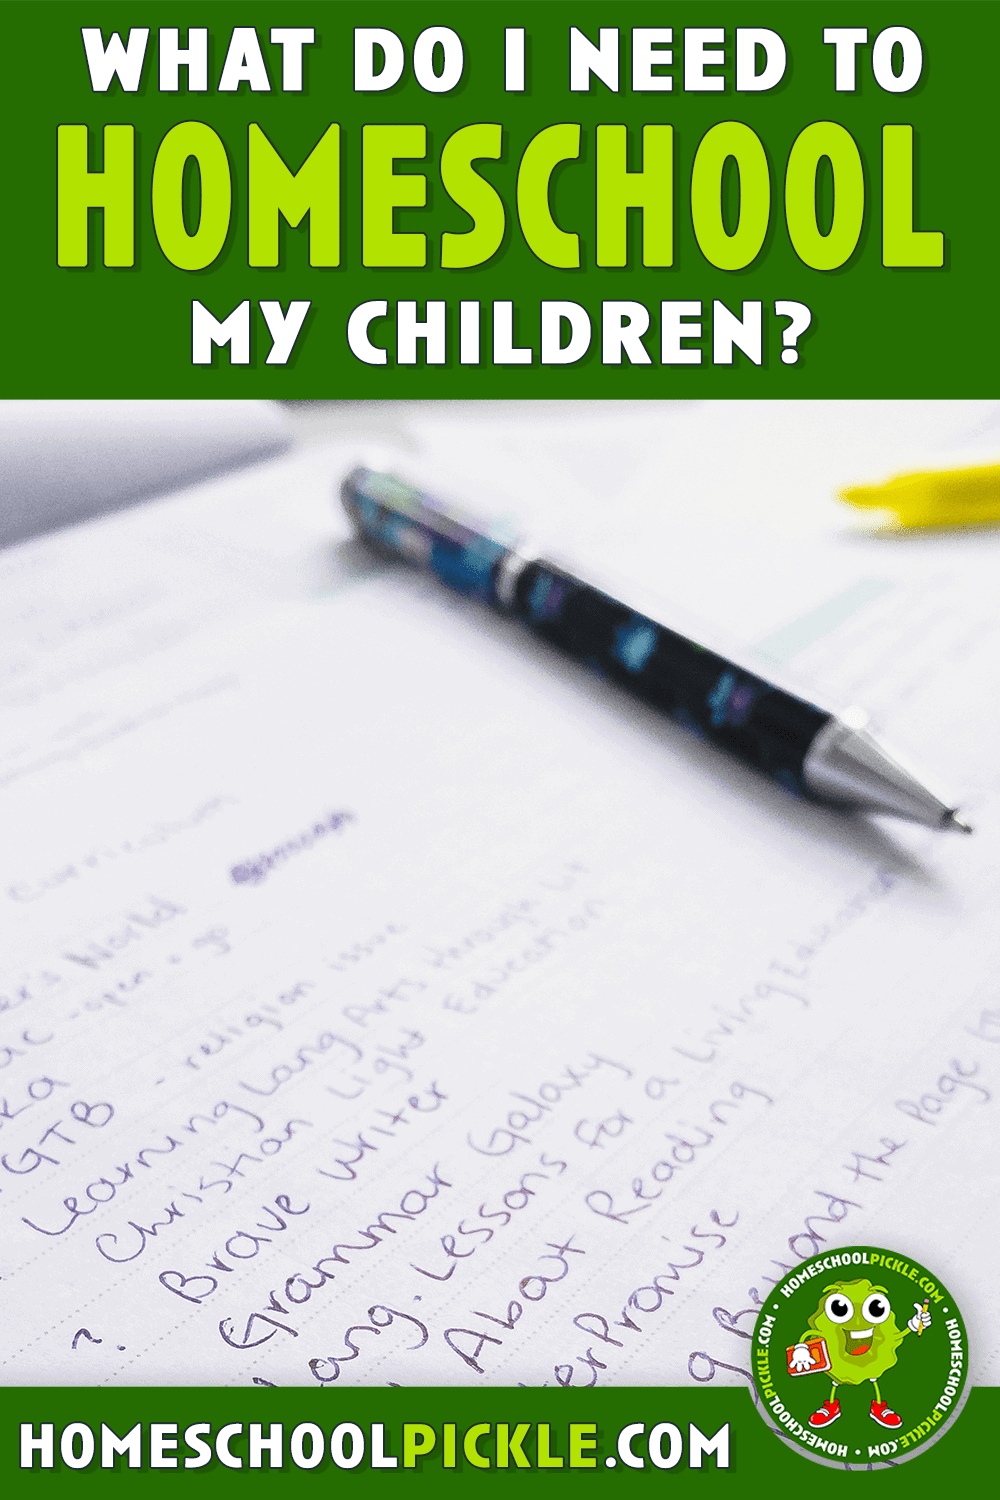 what do I need to homeschool my child